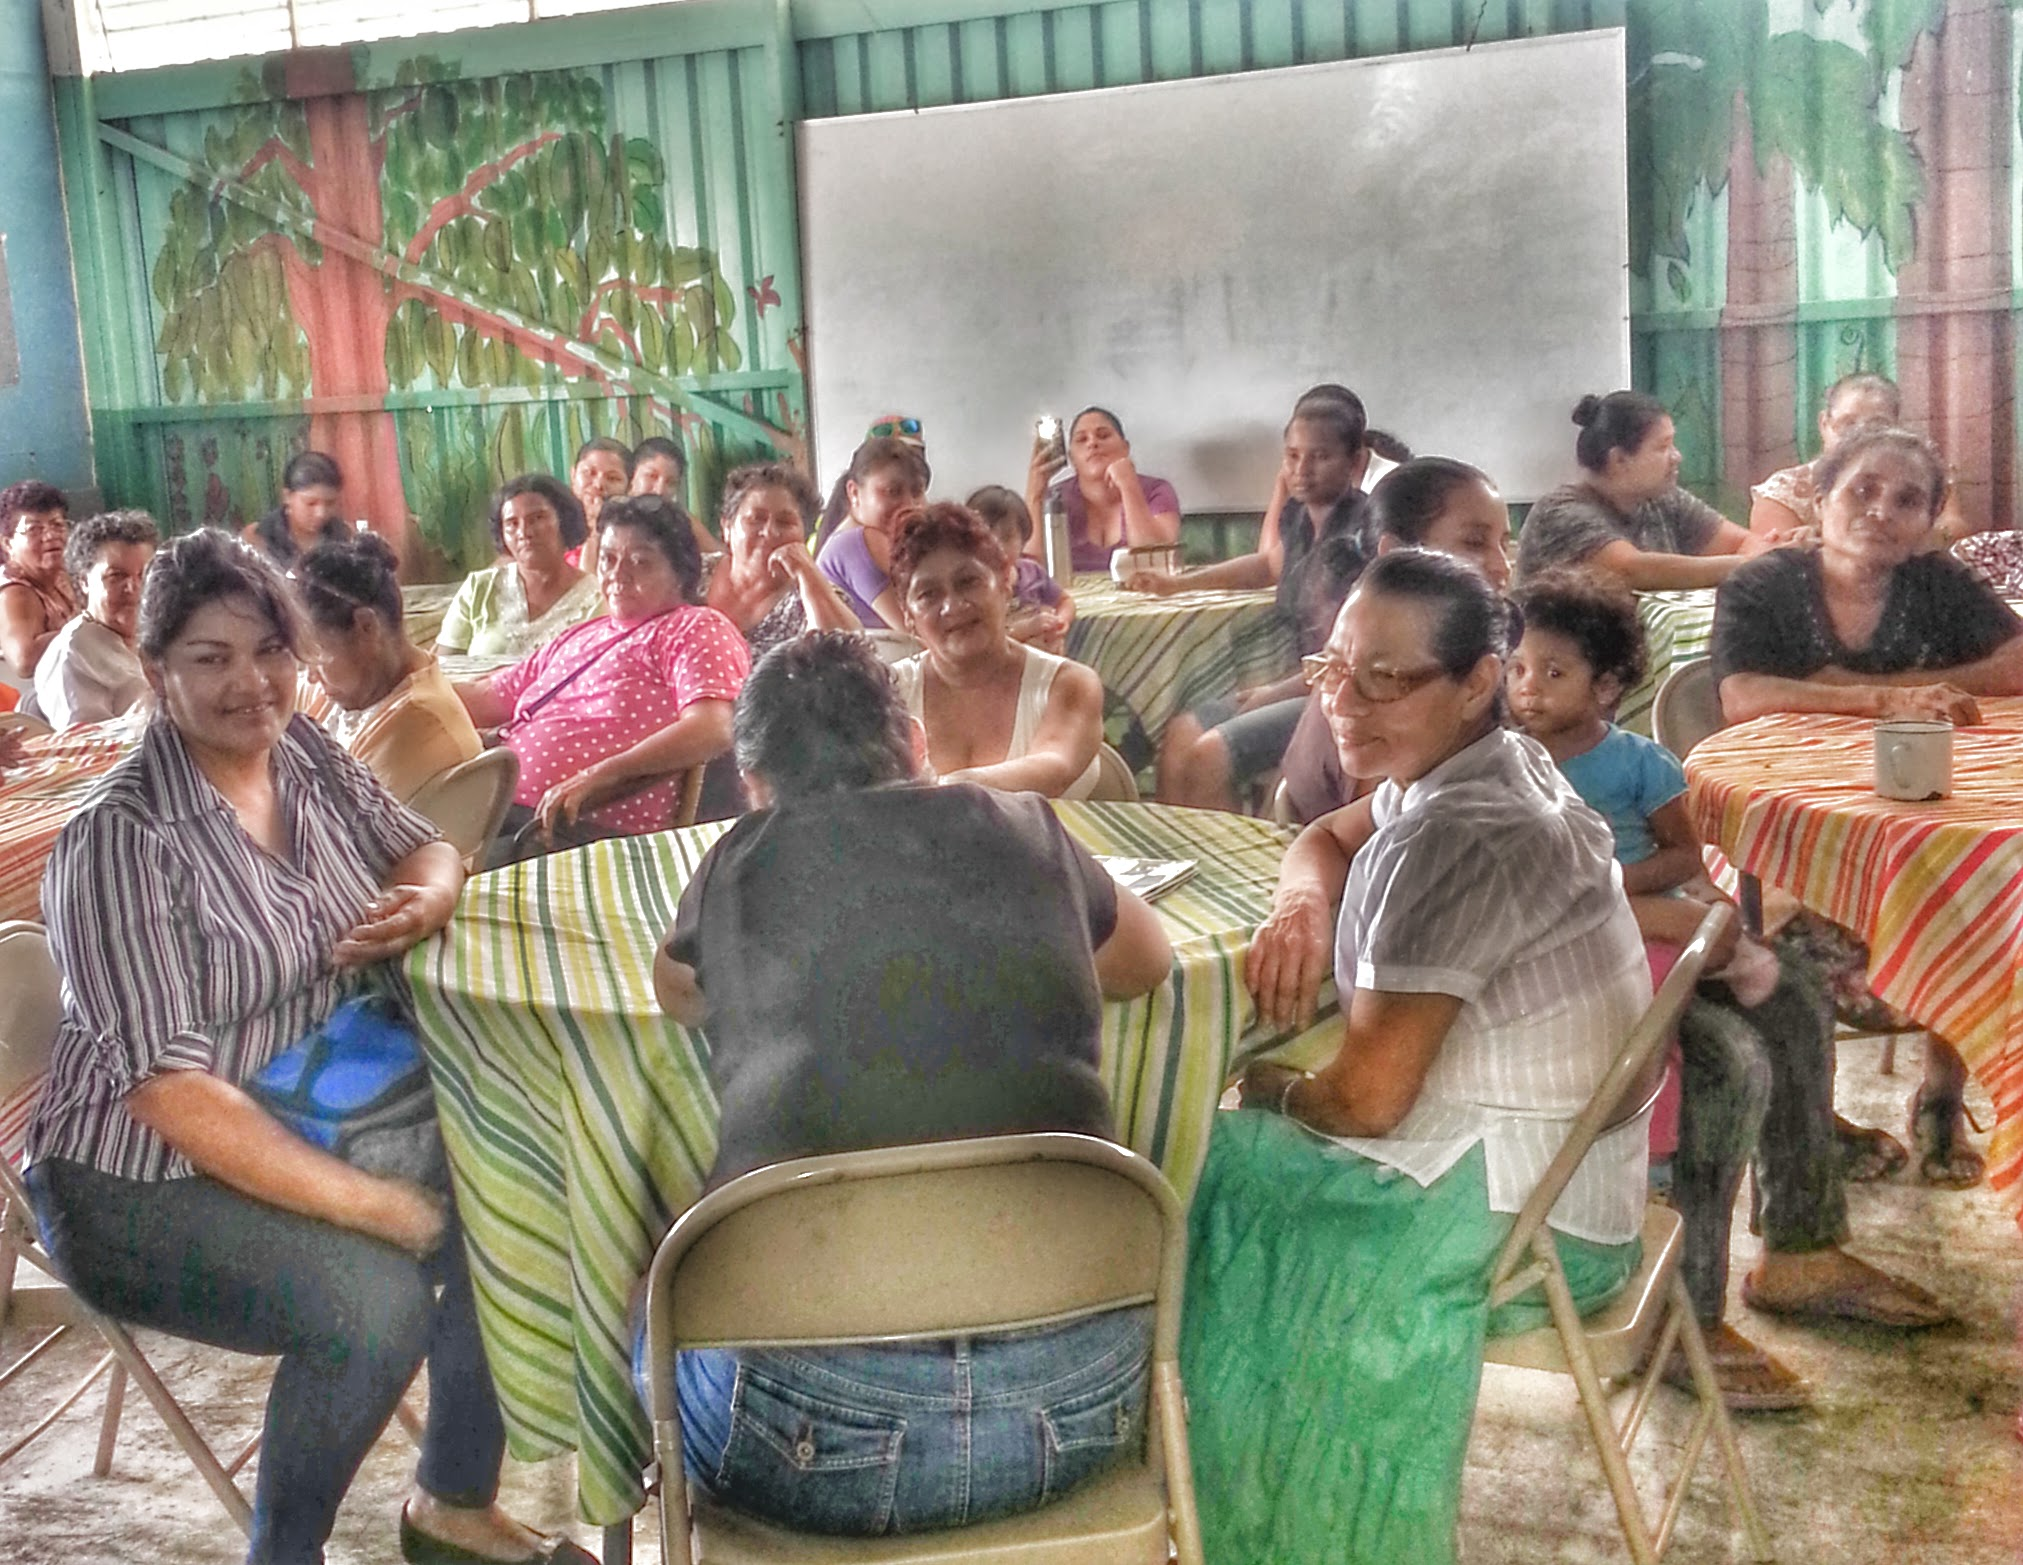 Women from La Carpio take part in a community meeting.